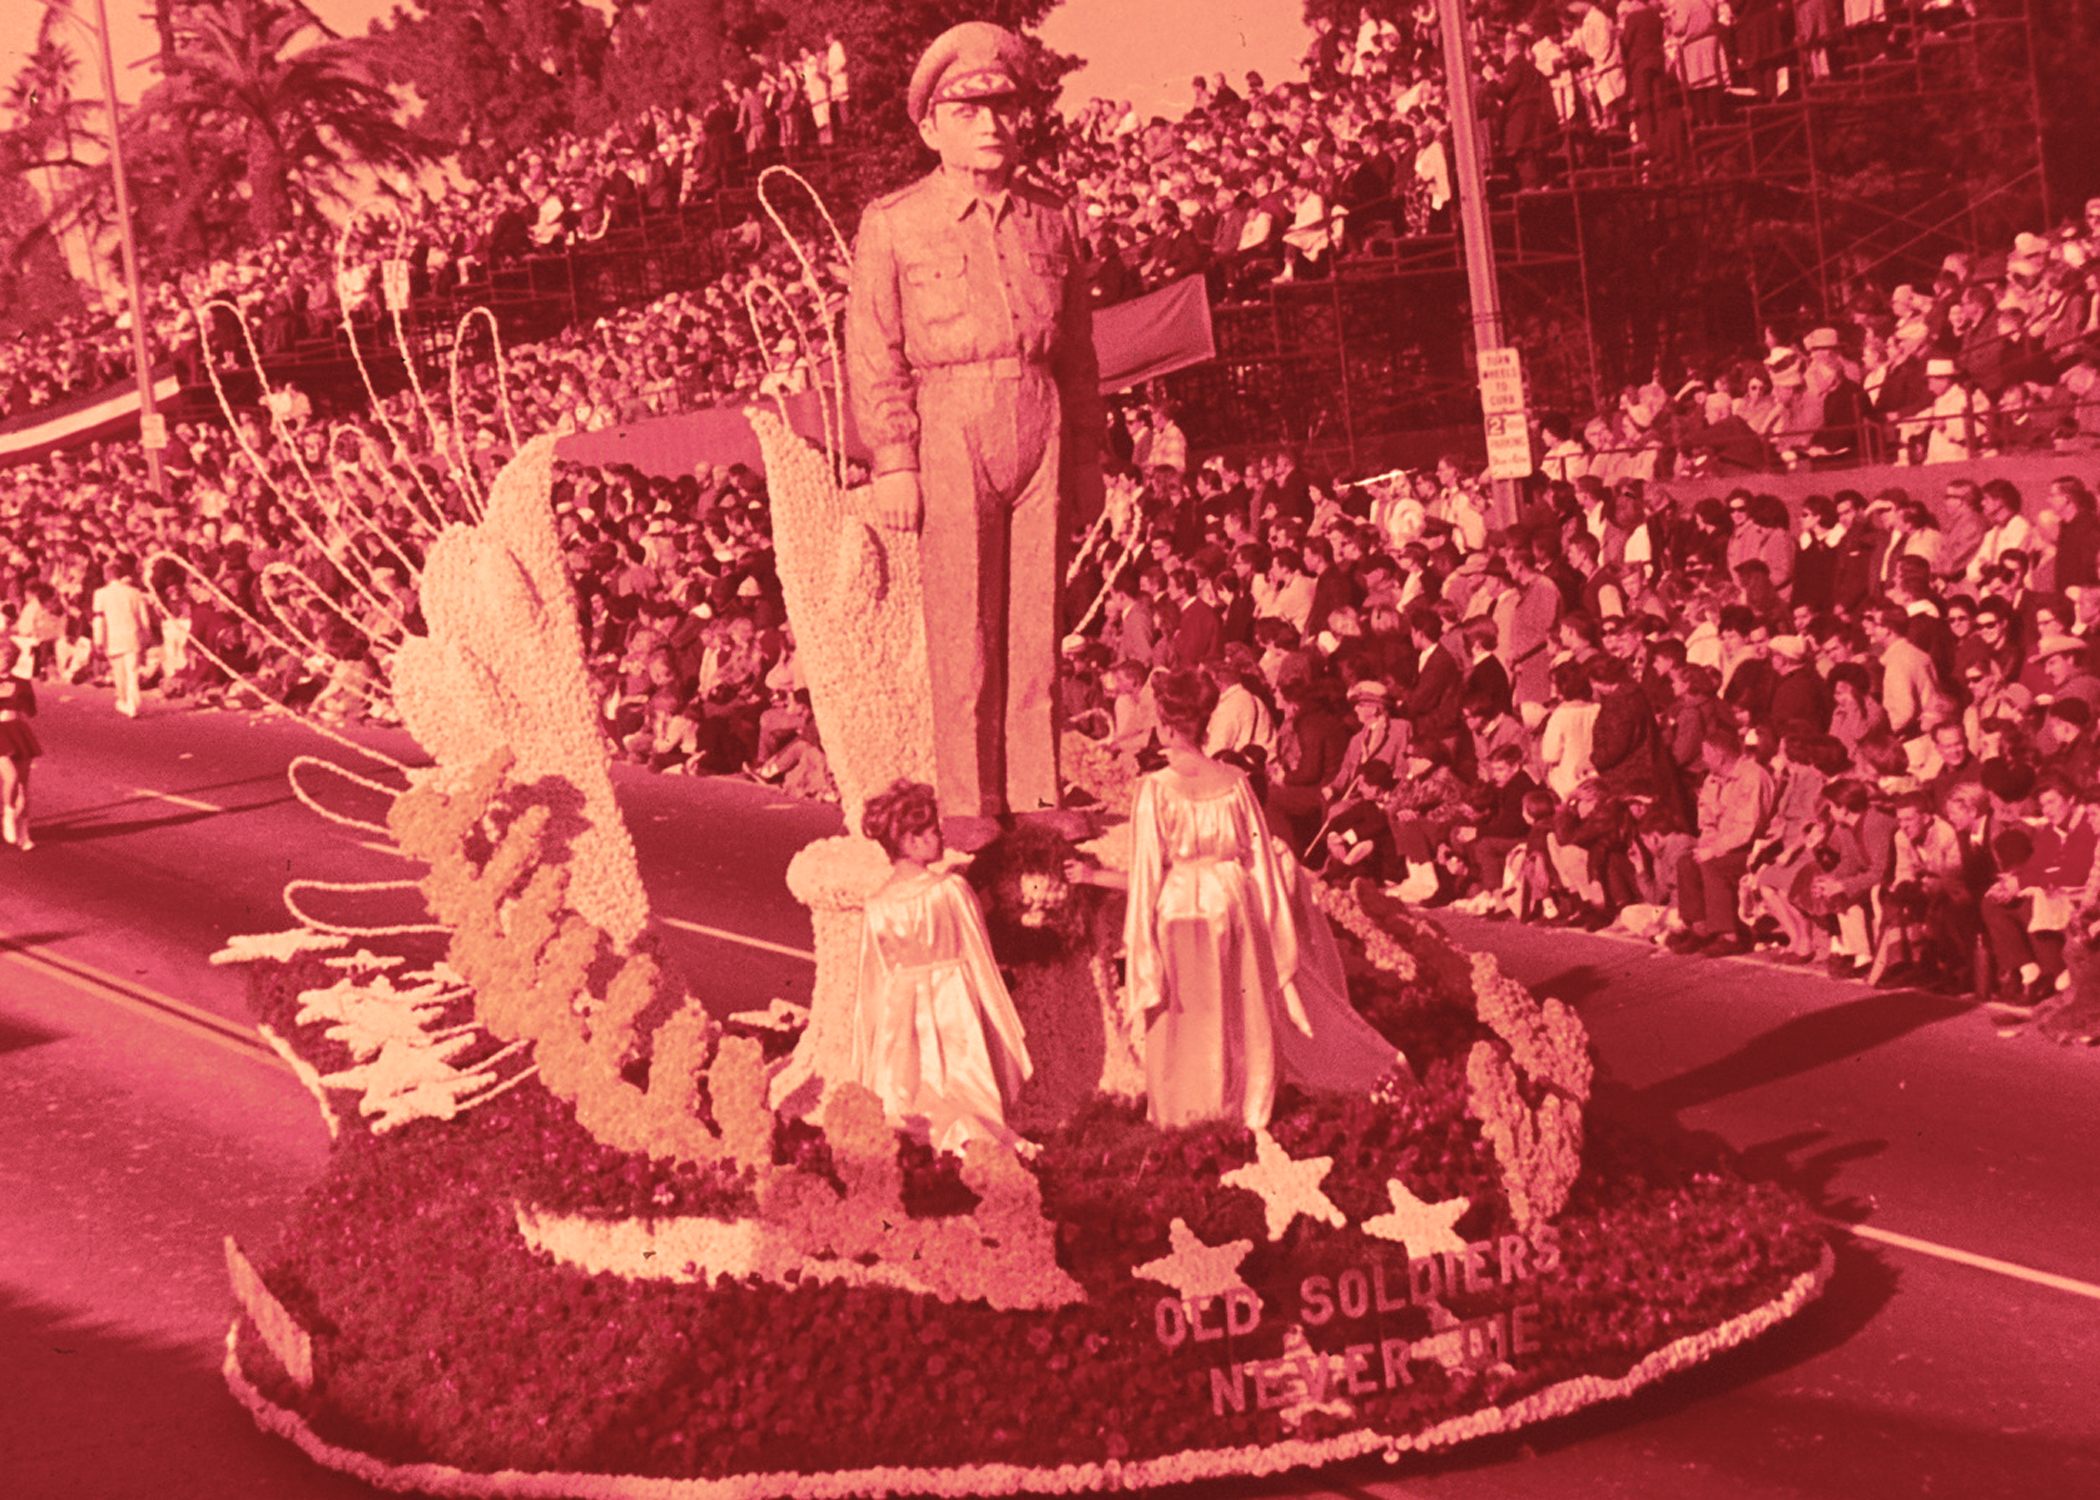 The Old Soldiers Never Die float from the 1965 Tournament of Roses Parade in Pasadena, California.